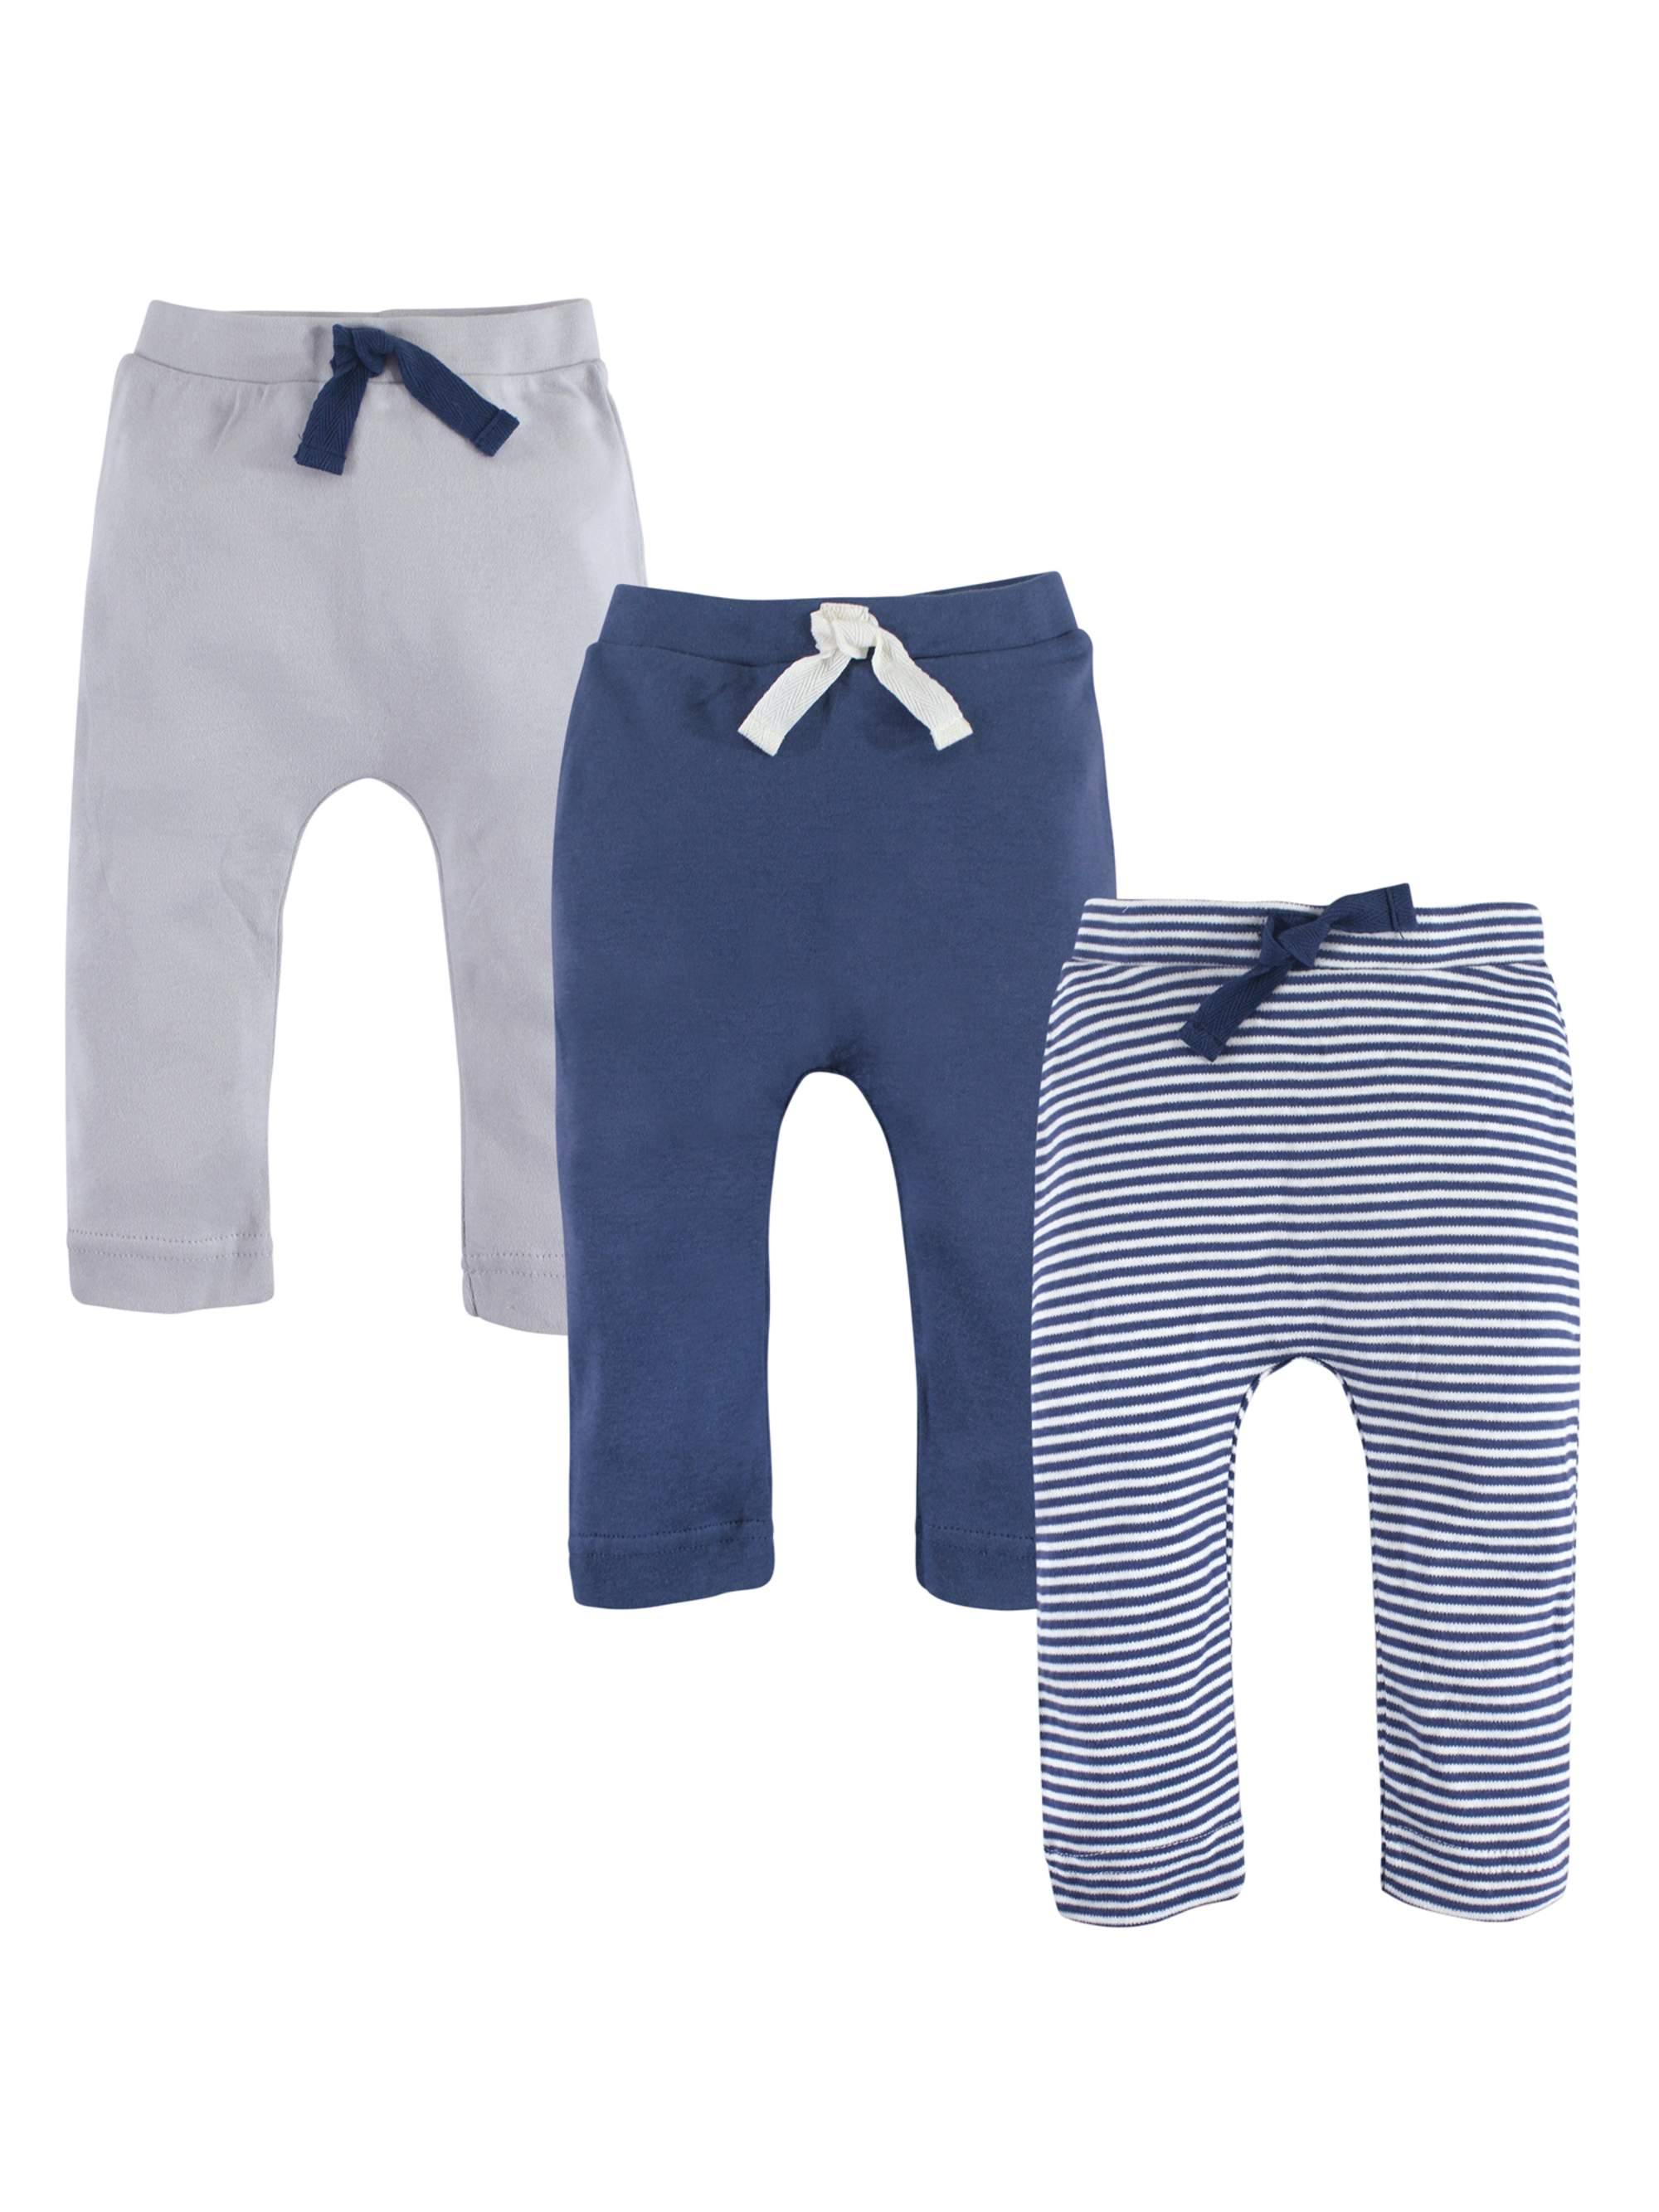 Oatmeal//Navy Touched By Nature Boy Baby Organic Cotton Pants 3-Pack